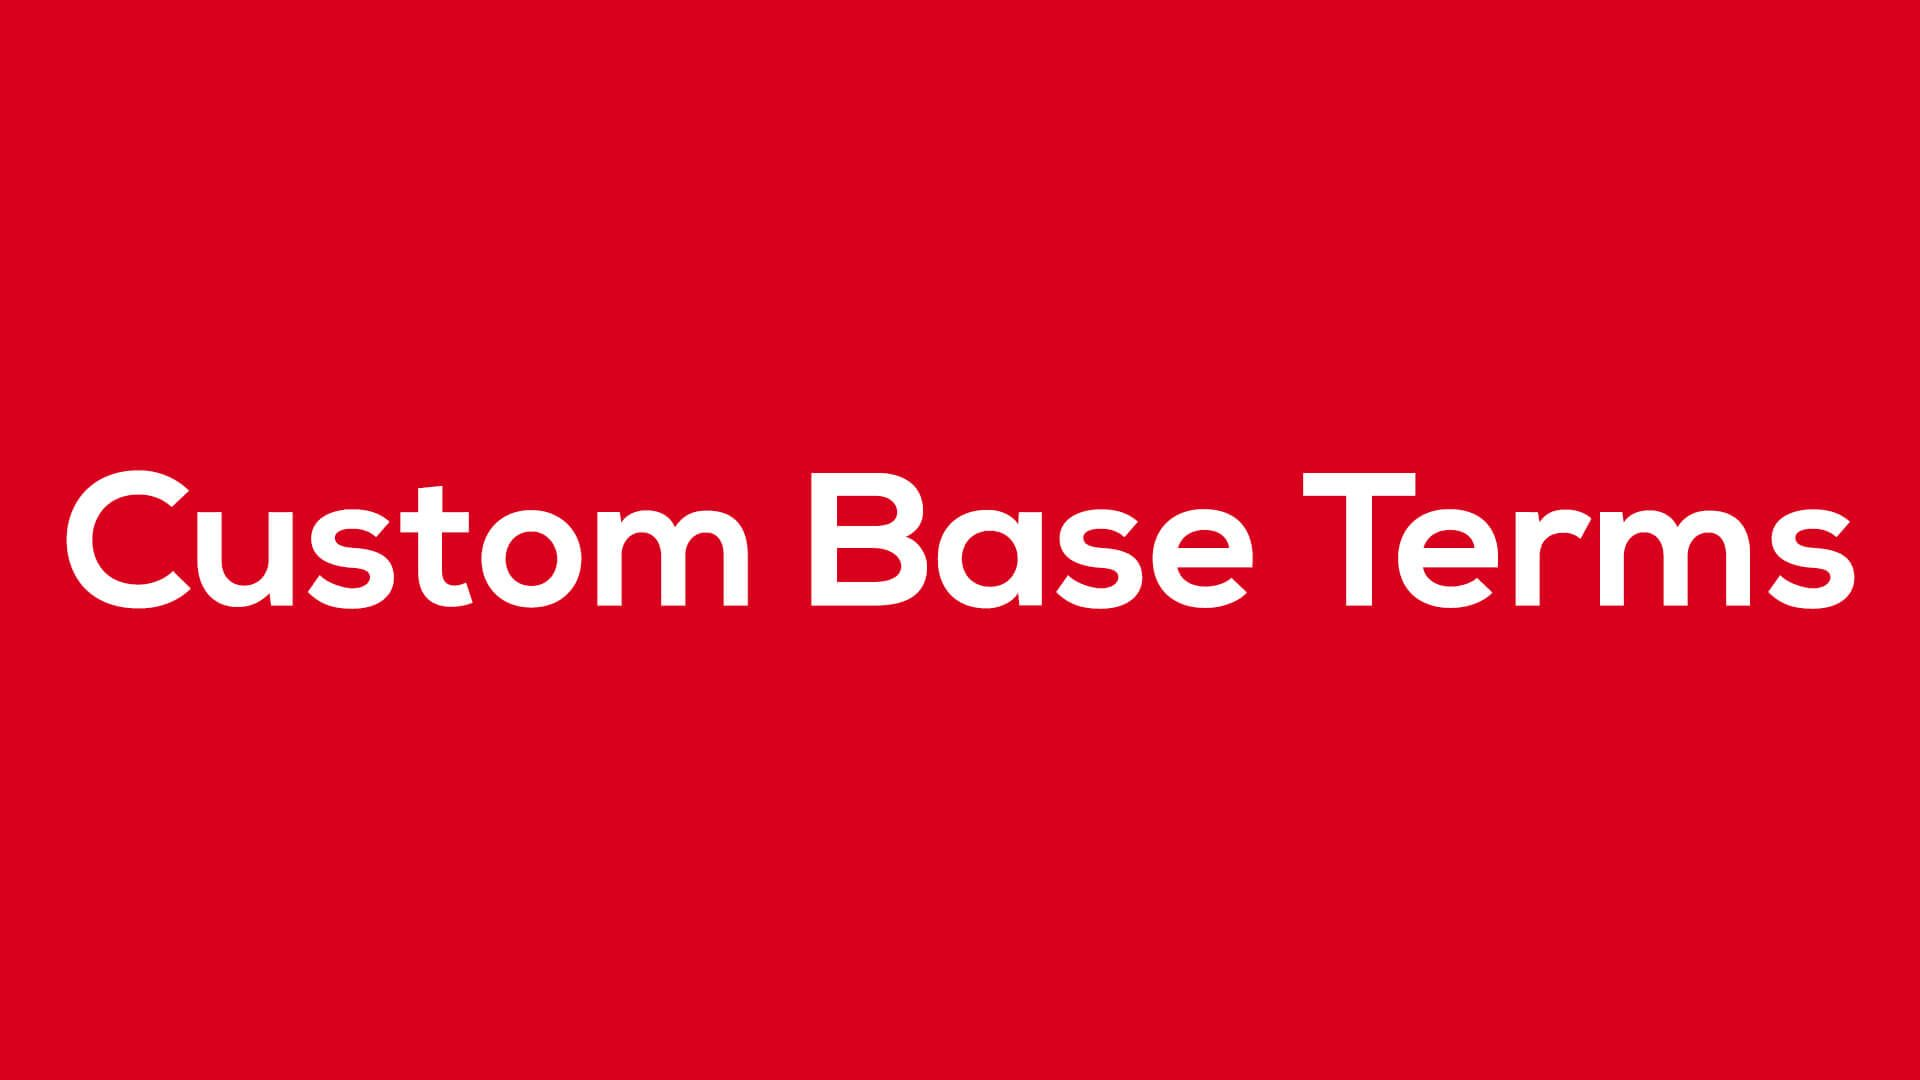 Custom Base Terms - Blog